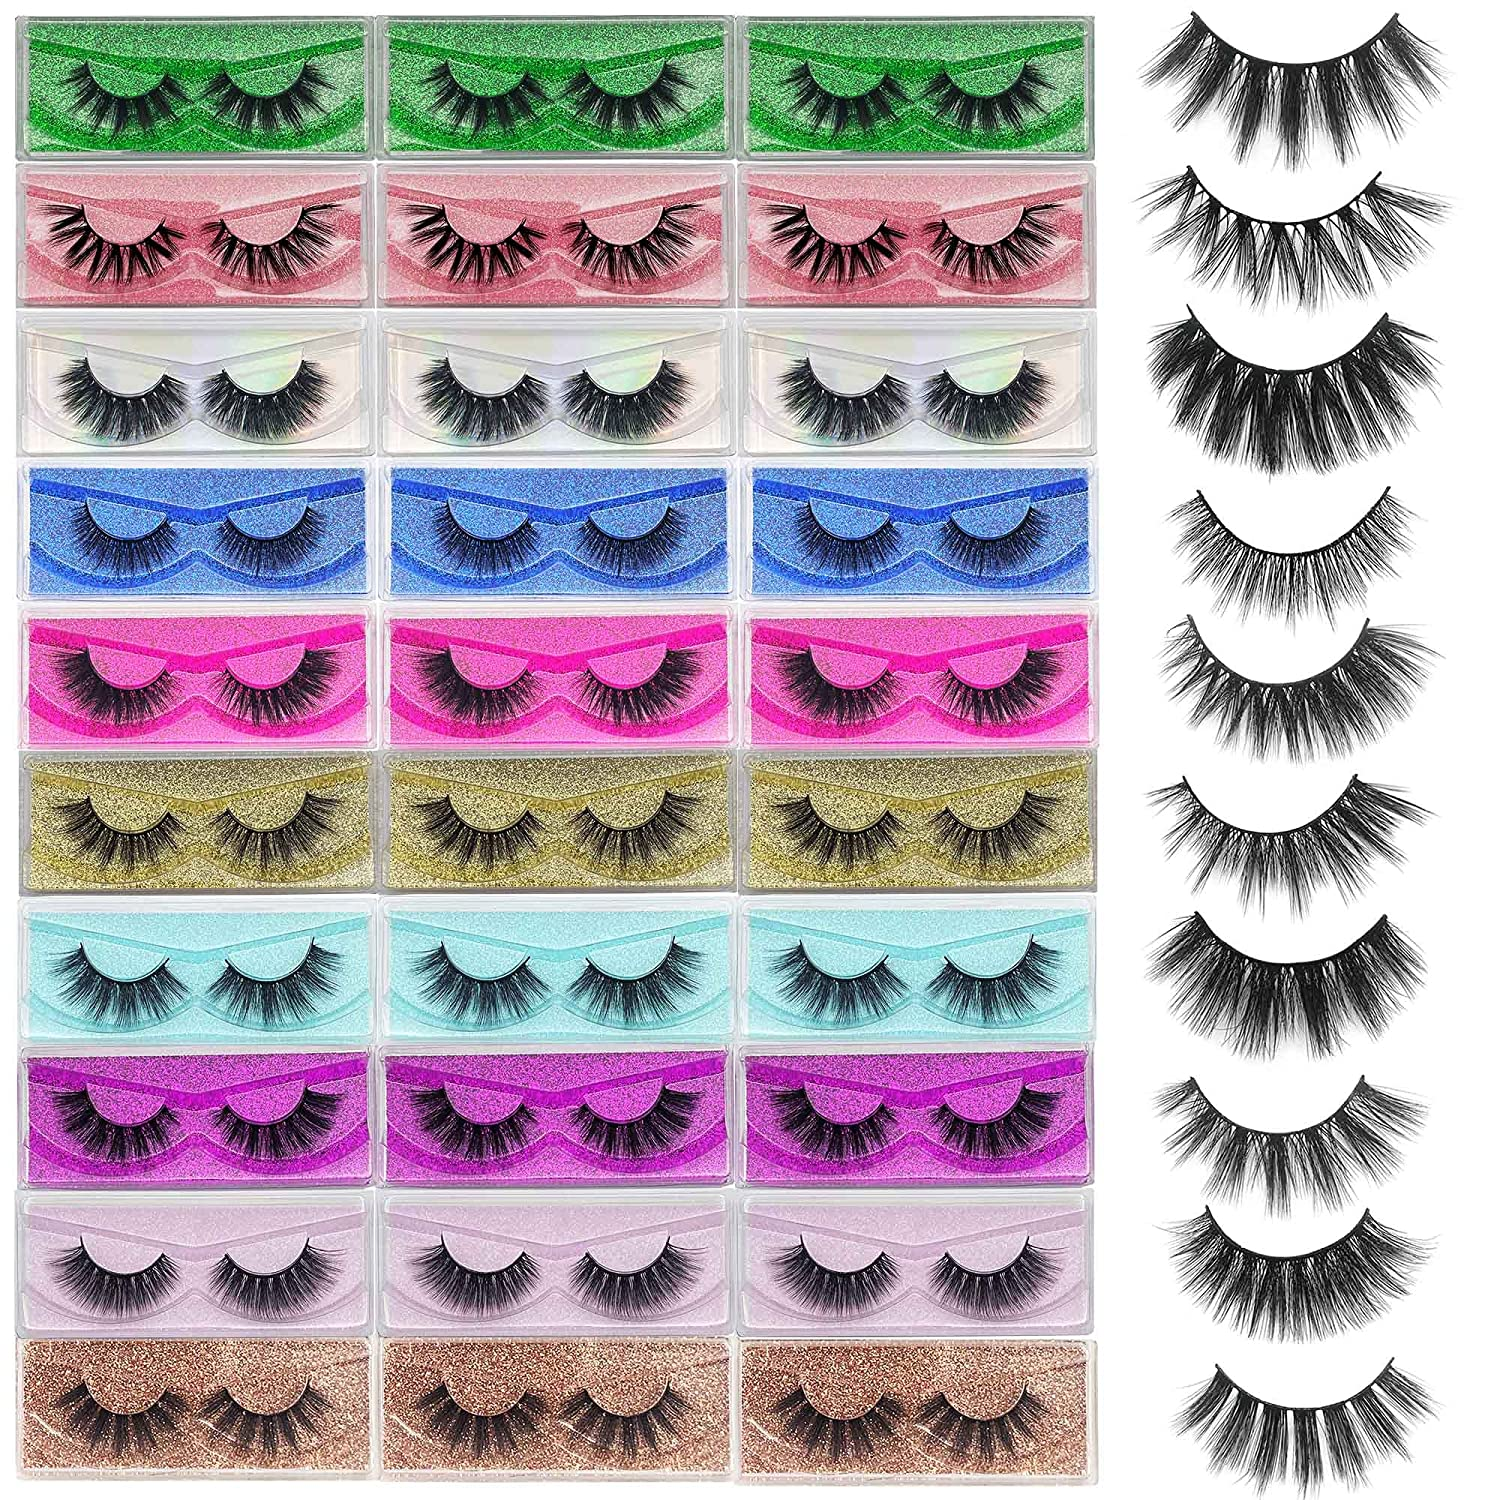 False Eyelashes Bulk Mikiwi Special Max 44% OFF price for a limited time 30 Pack 5D 12-20mm Fake Mink Lahes